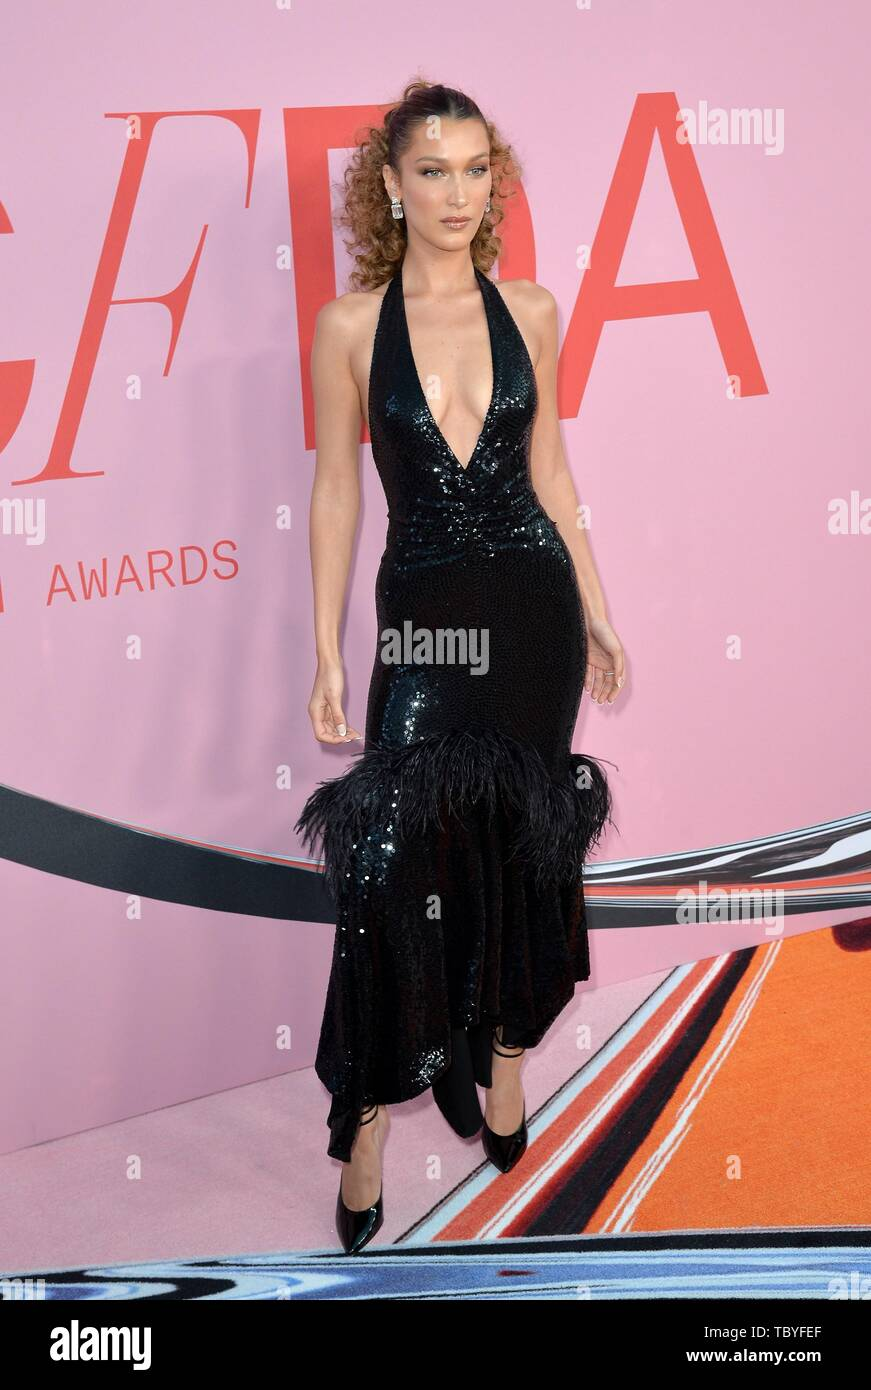 Bella Hadid At Arrivals For 2019 Council Of Fashion Designers Of America Cfda Awards The Brooklyn Museum Brooklyn Ny June 3 2019 Photo By Kristin Callahan Everett Collection Stock Photo Alamy